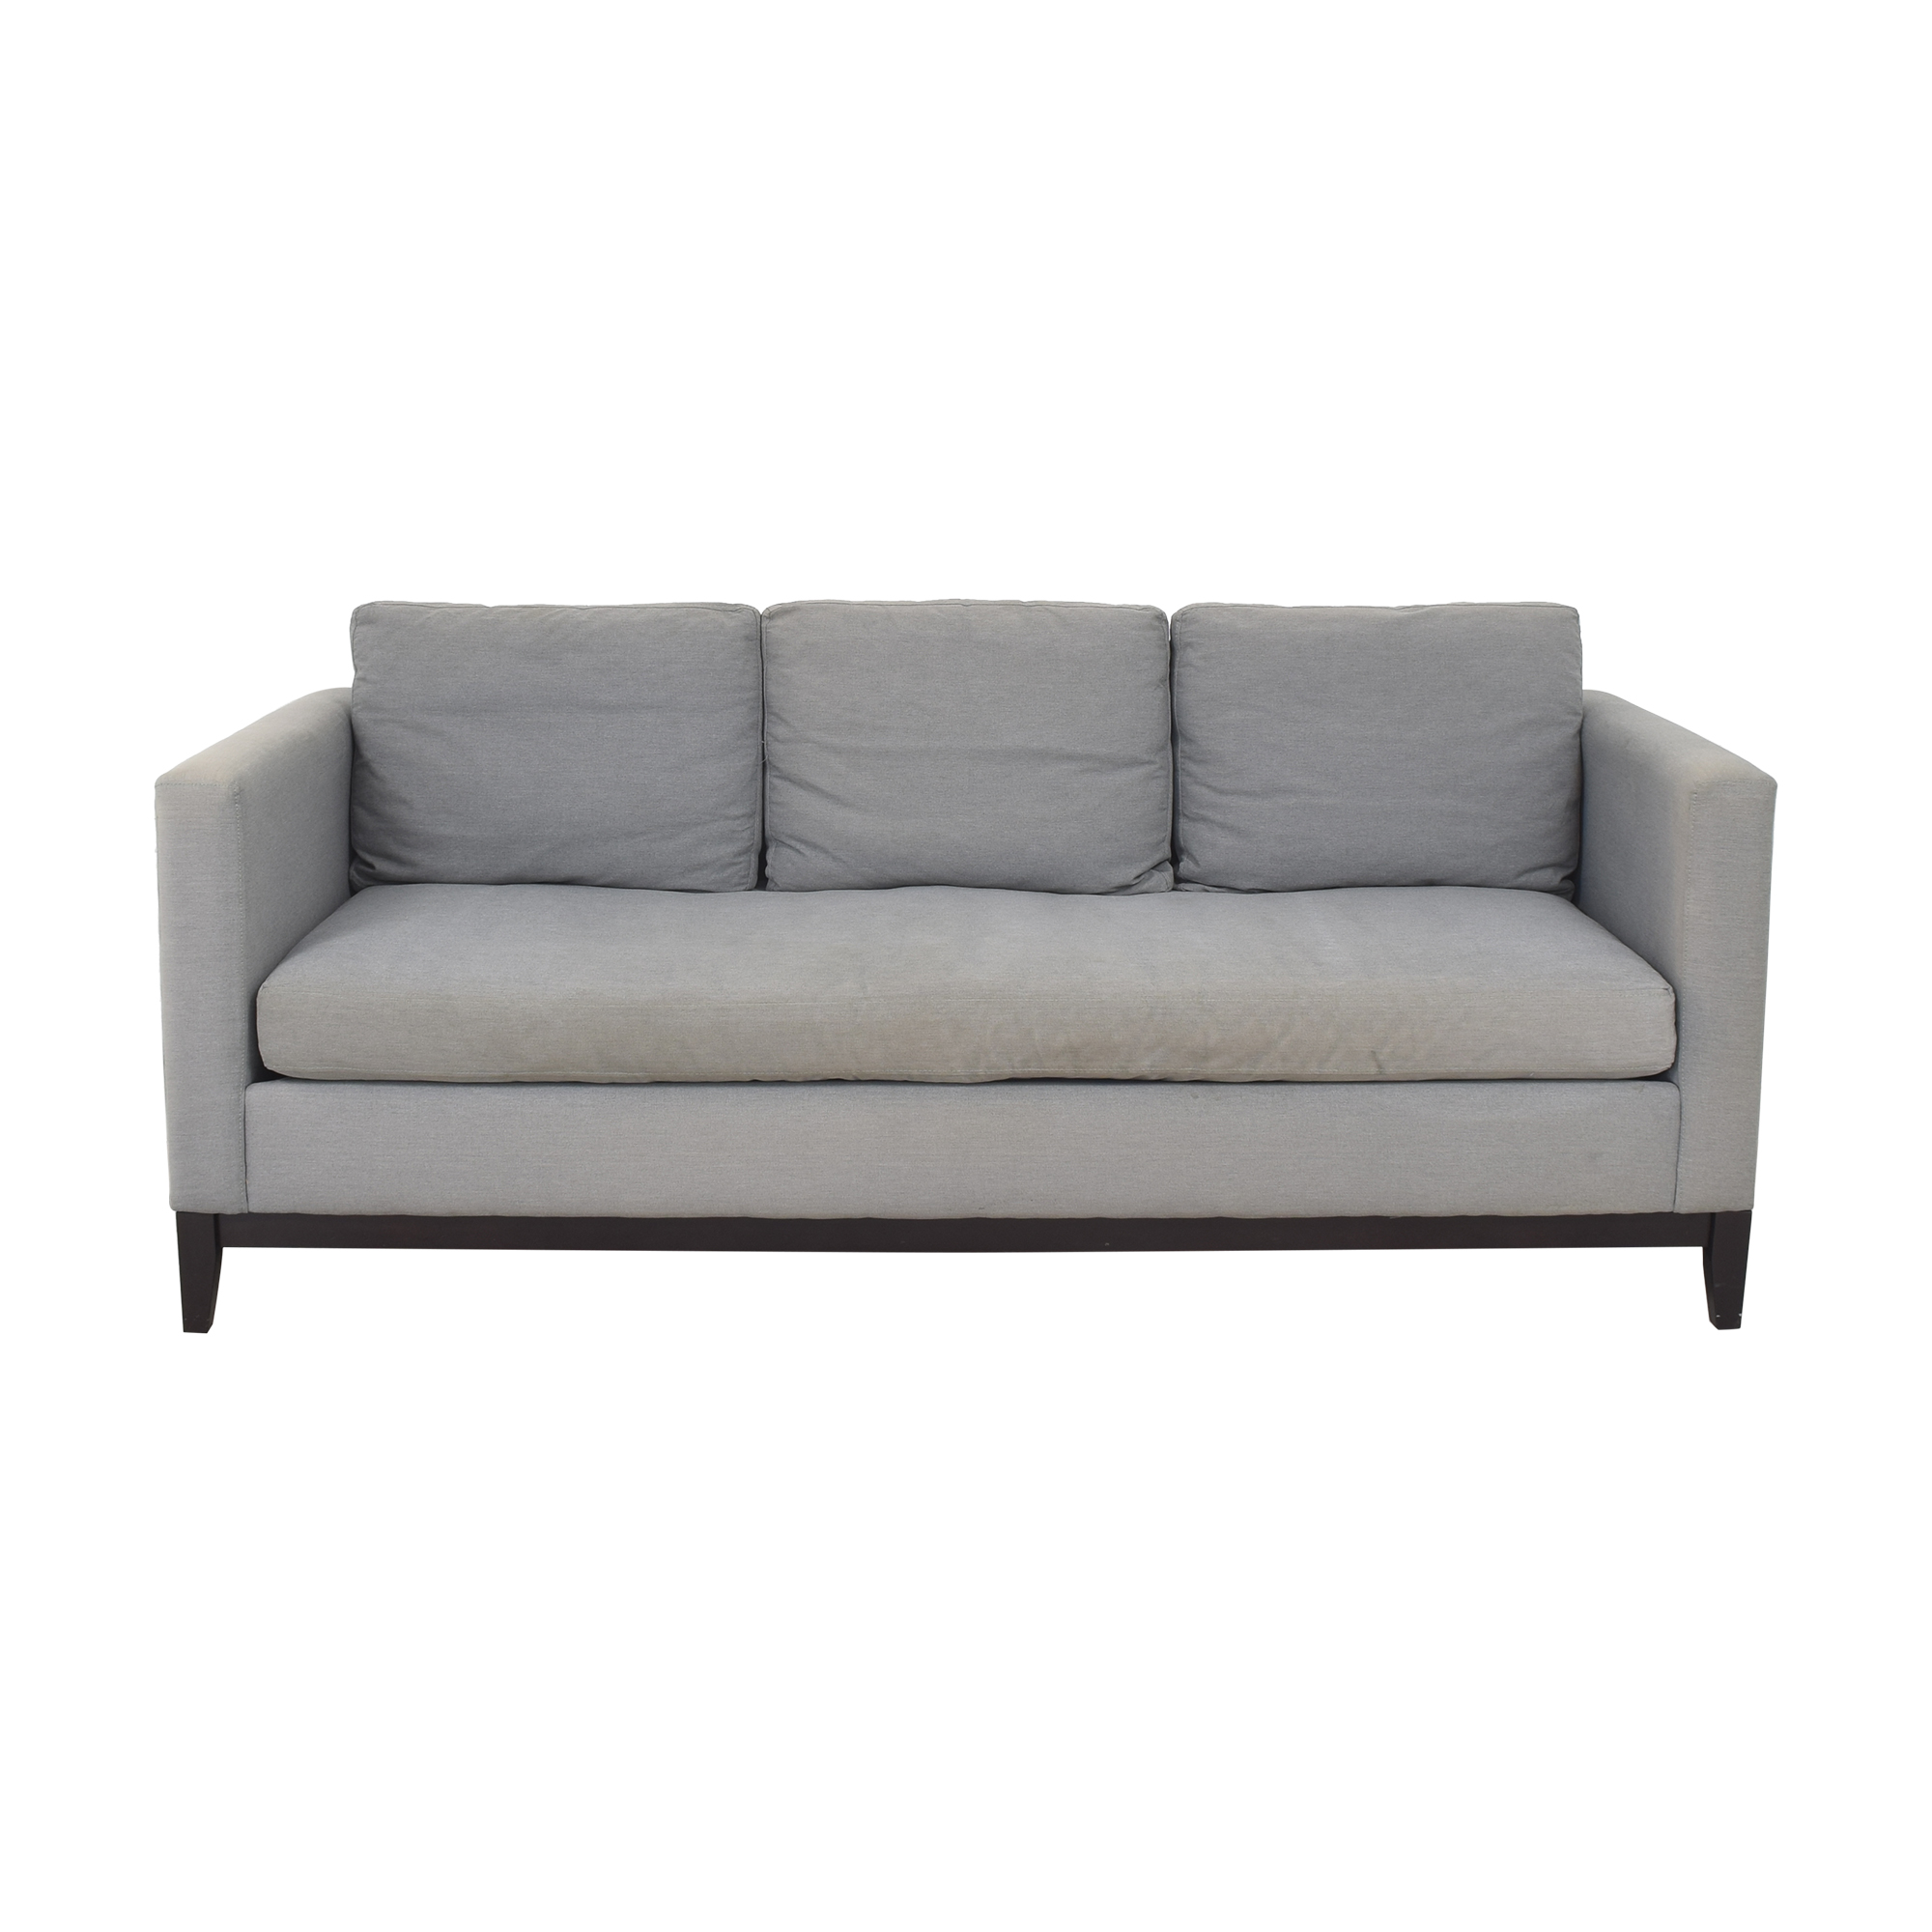 West Elm West Elm Blake Bench Cushion Sofa used